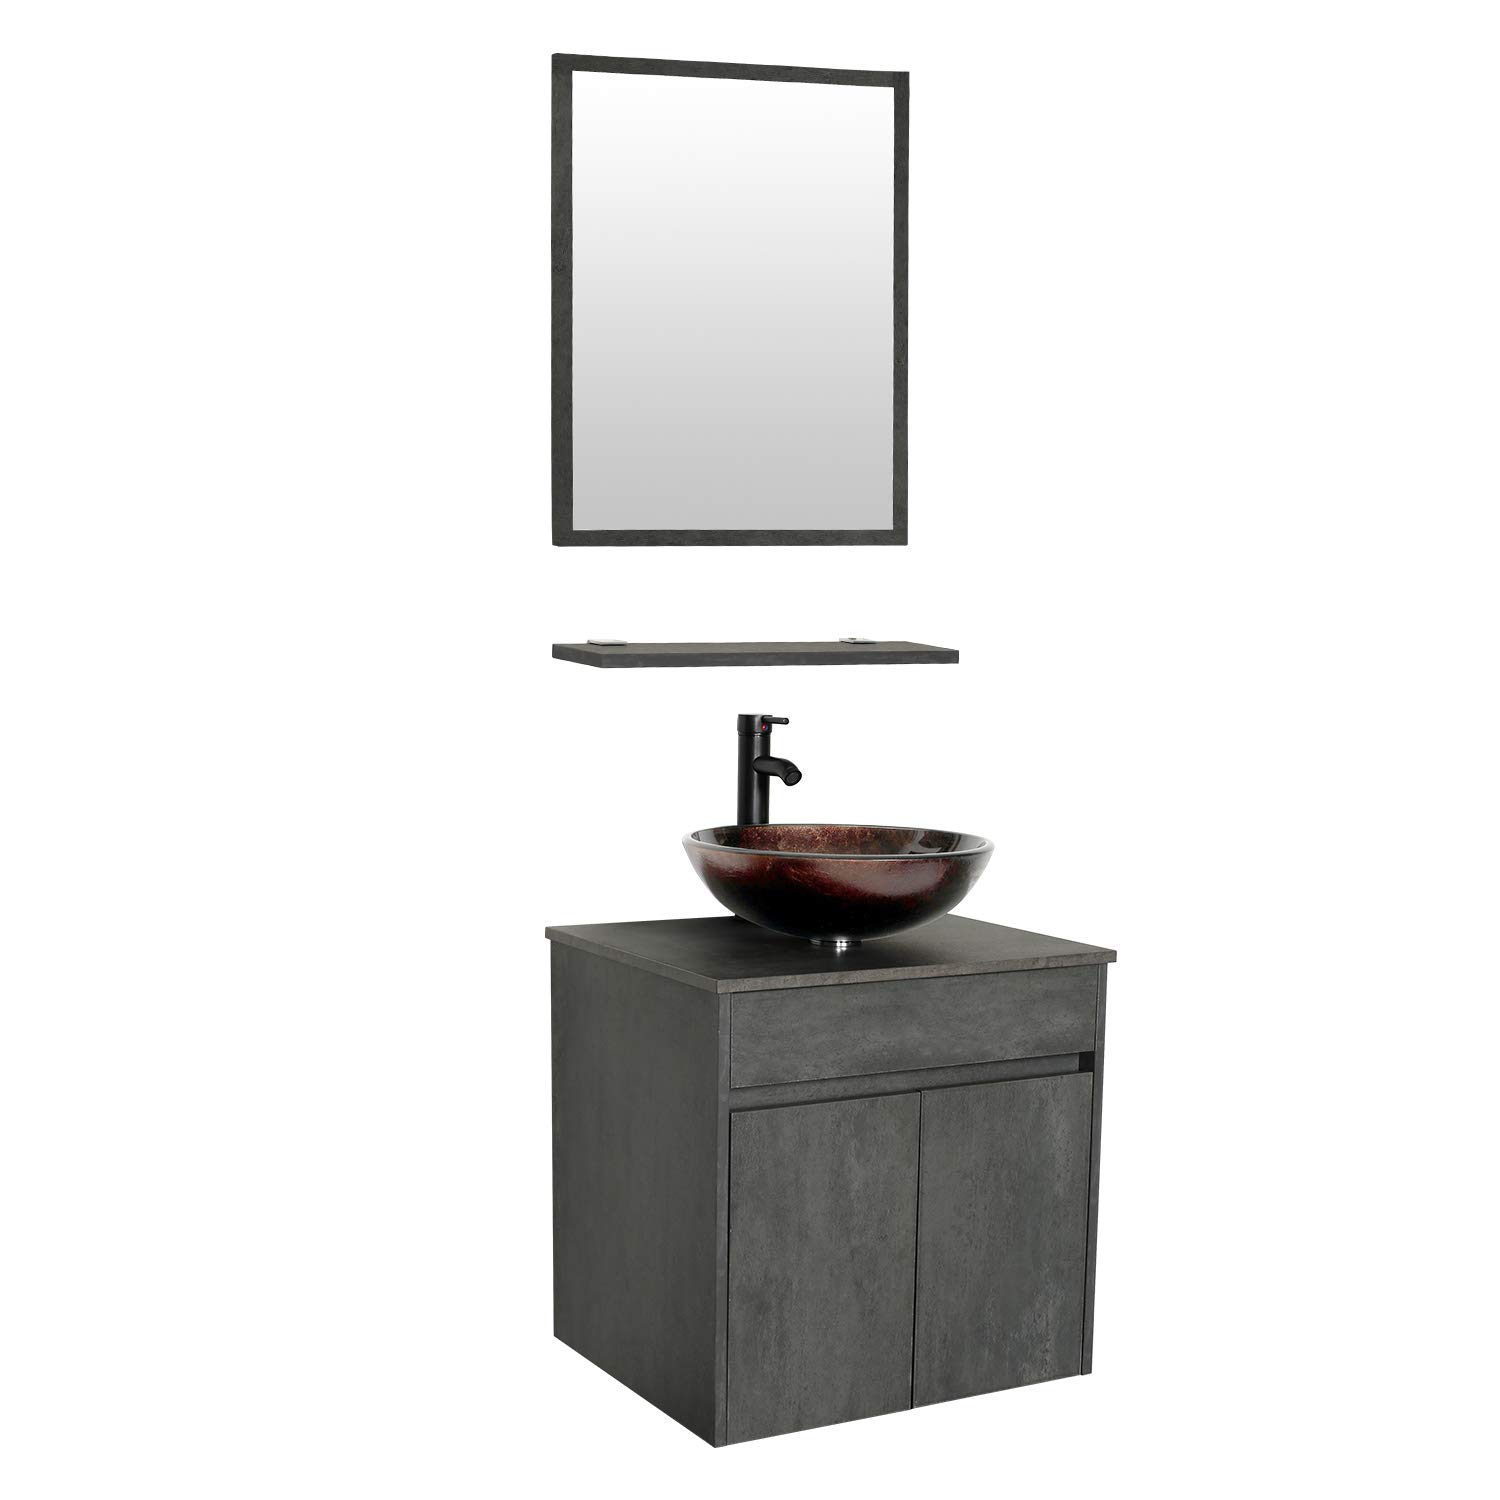 eclife 24 Bathroom Vanity Sink Combo Wall Mounted Concrete Grey Cabinet Vanity Set Brown Round Tempered Glass Vessel Sink Top, W ORB Faucet, Pop Up Drain Mirror A09E03CC